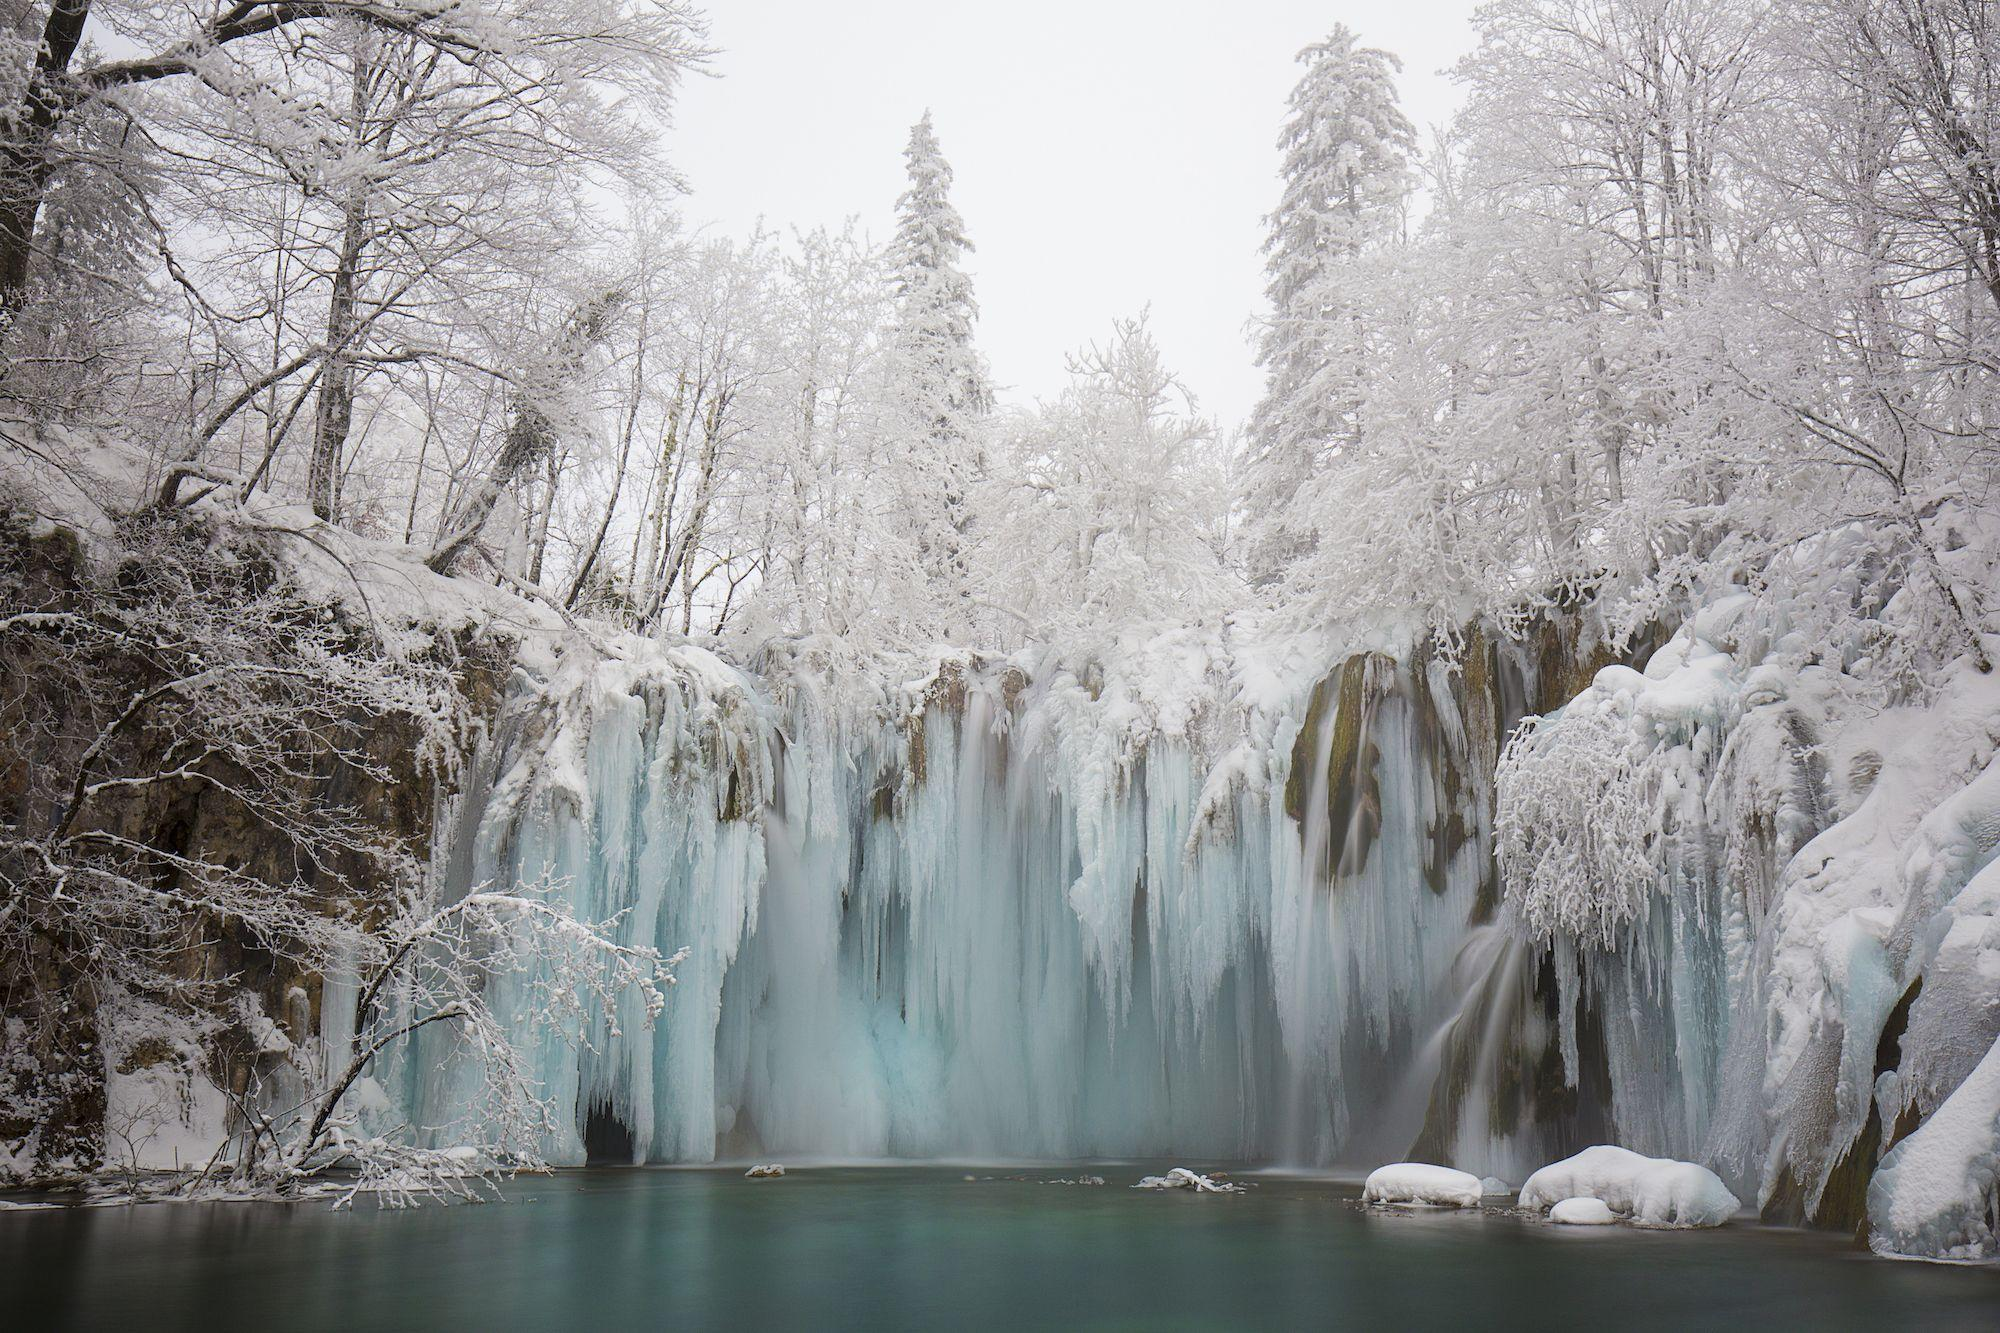 uk.movies.yahoo.com: Frozen Waterfalls That Show the Beauty of Wintertime